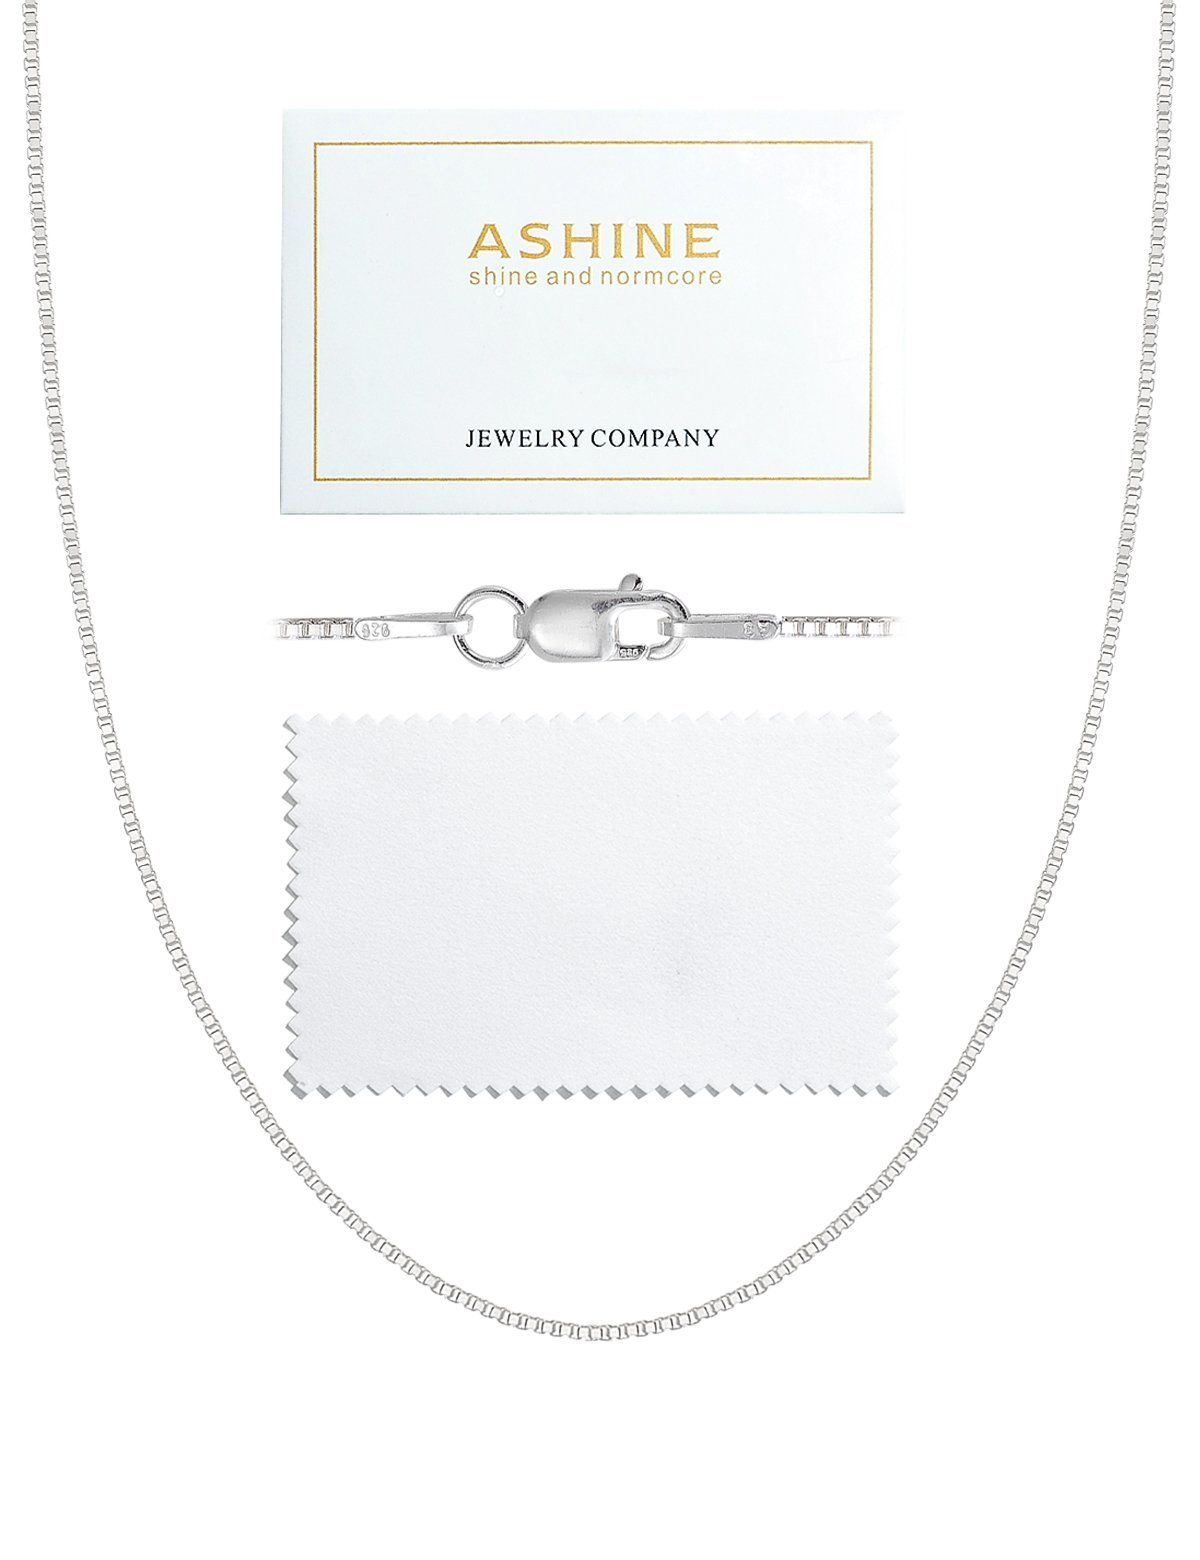 Made in Italy Cleaning Cloth 1mm 925 Sterling Silver Nickel-Free Box Chain Necklace 14 inches